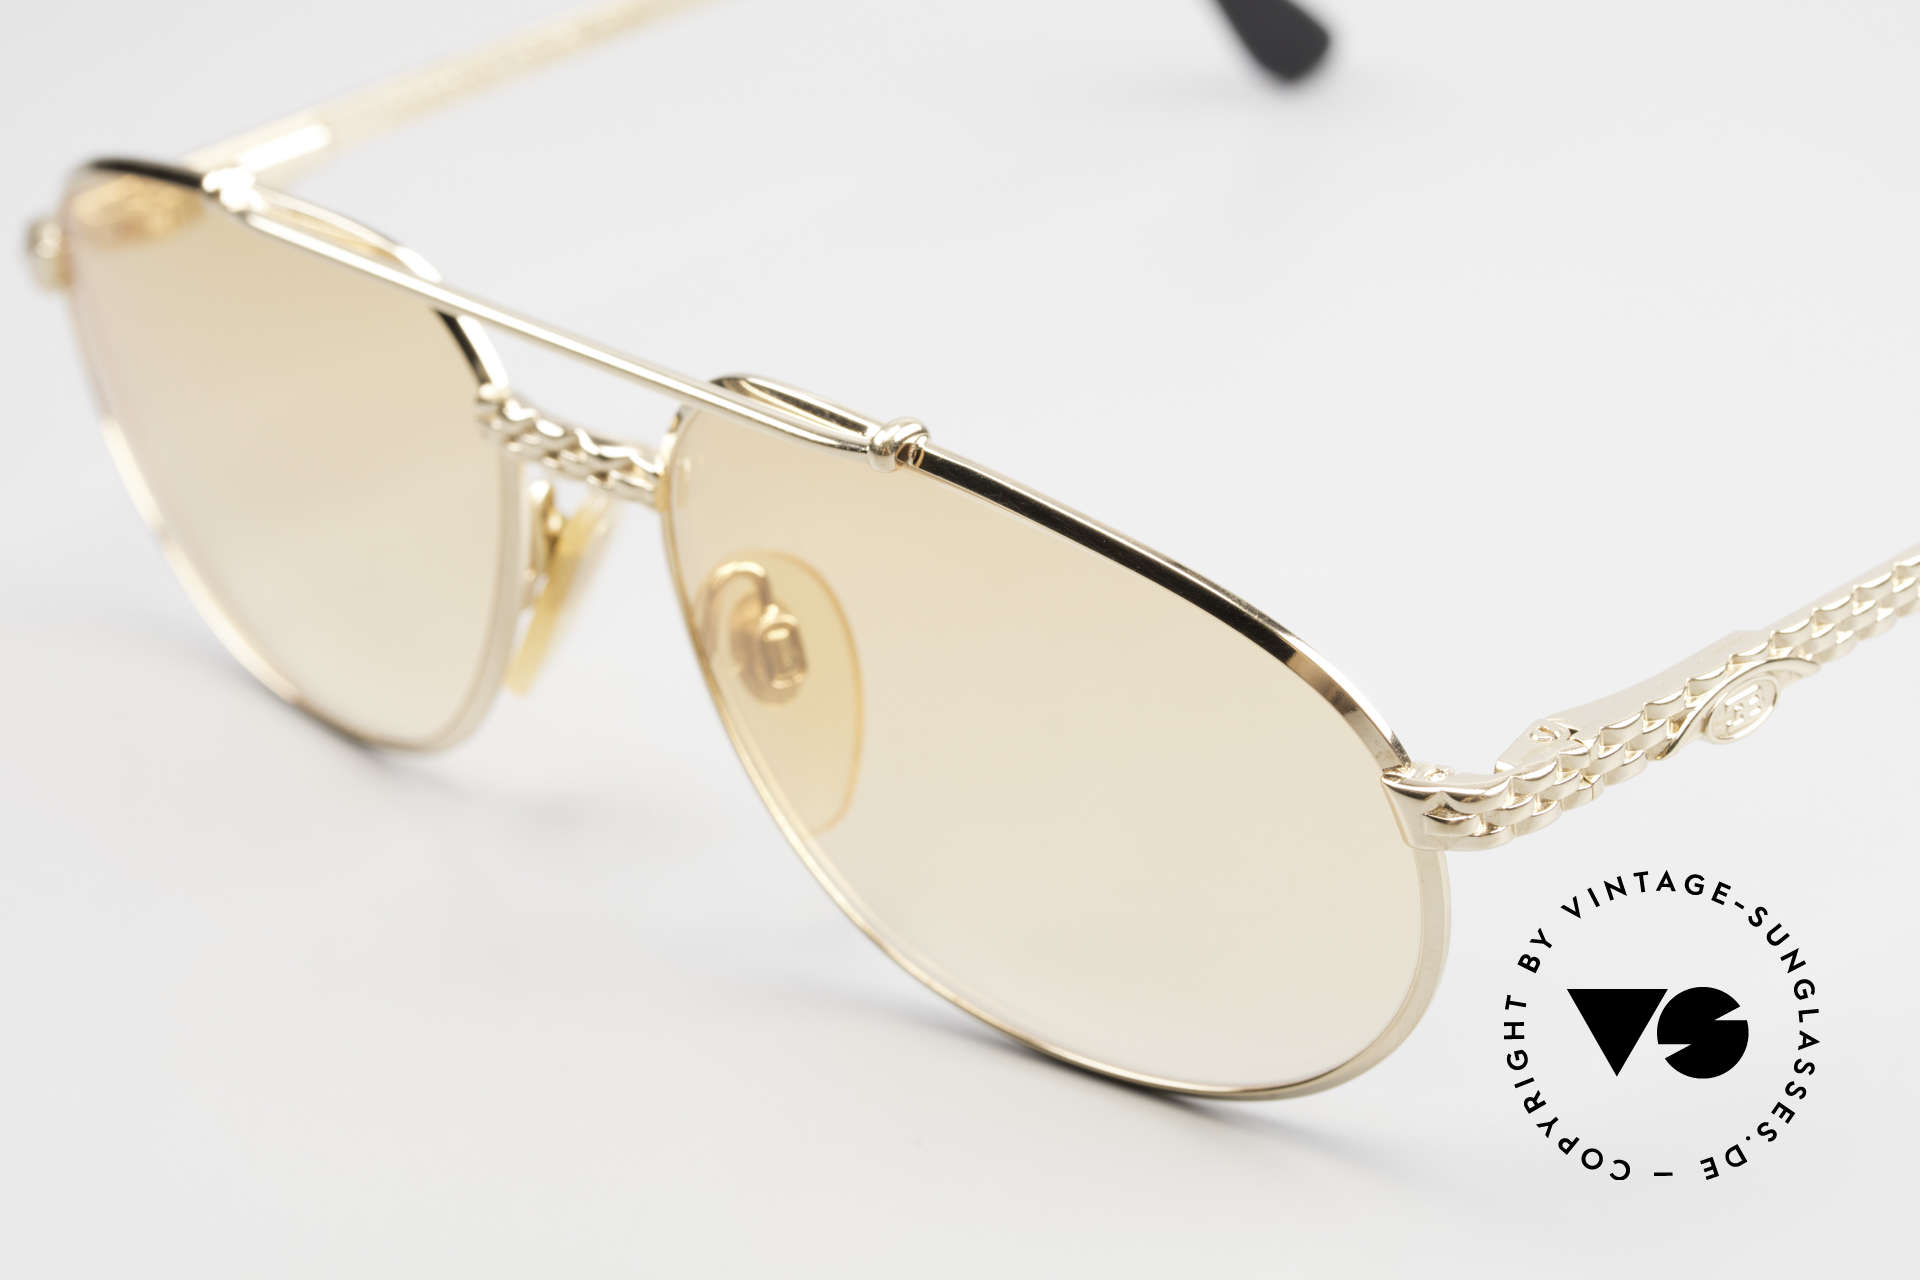 Bugatti EB503 Classic Luxury Sunglasses 90s, indescribable premium quality (You must feel this!), Made for Men